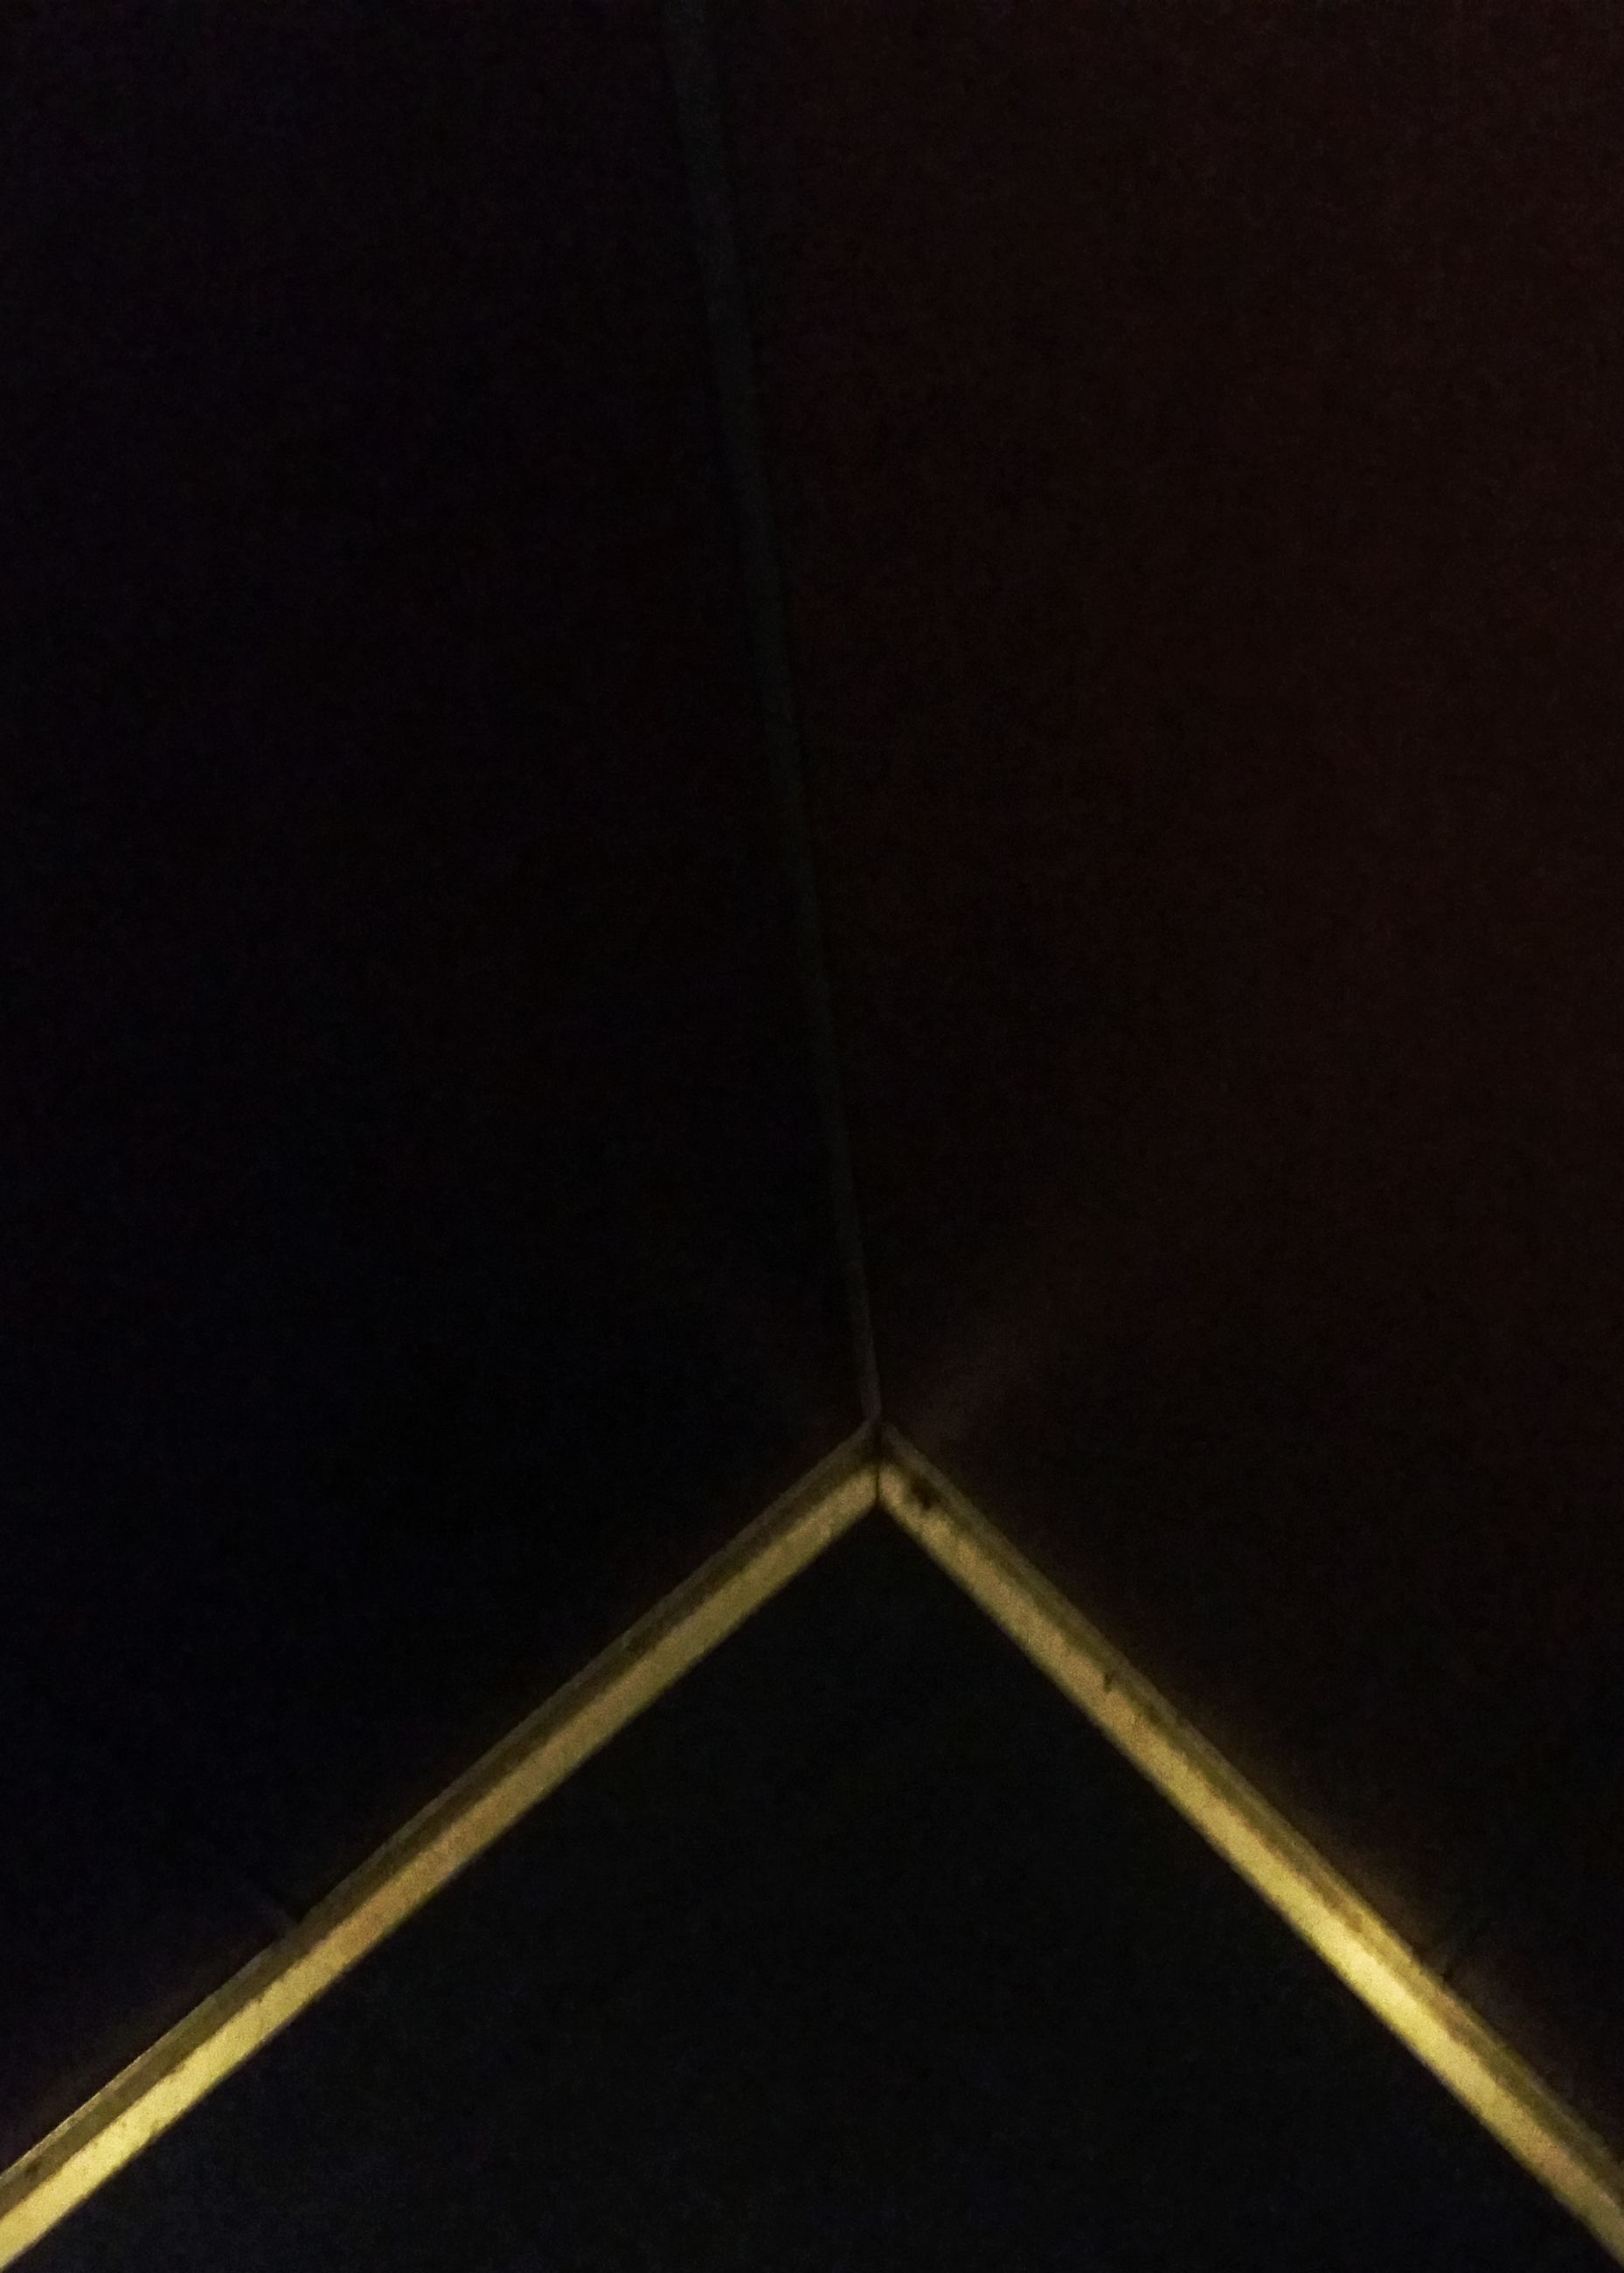 no people, copy space, night, low angle view, shape, sky, dark, architecture, nature, indoors, silhouette, studio shot, backgrounds, triangle shape, close-up, clear sky, pattern, metal, single object, directly below, dividing line